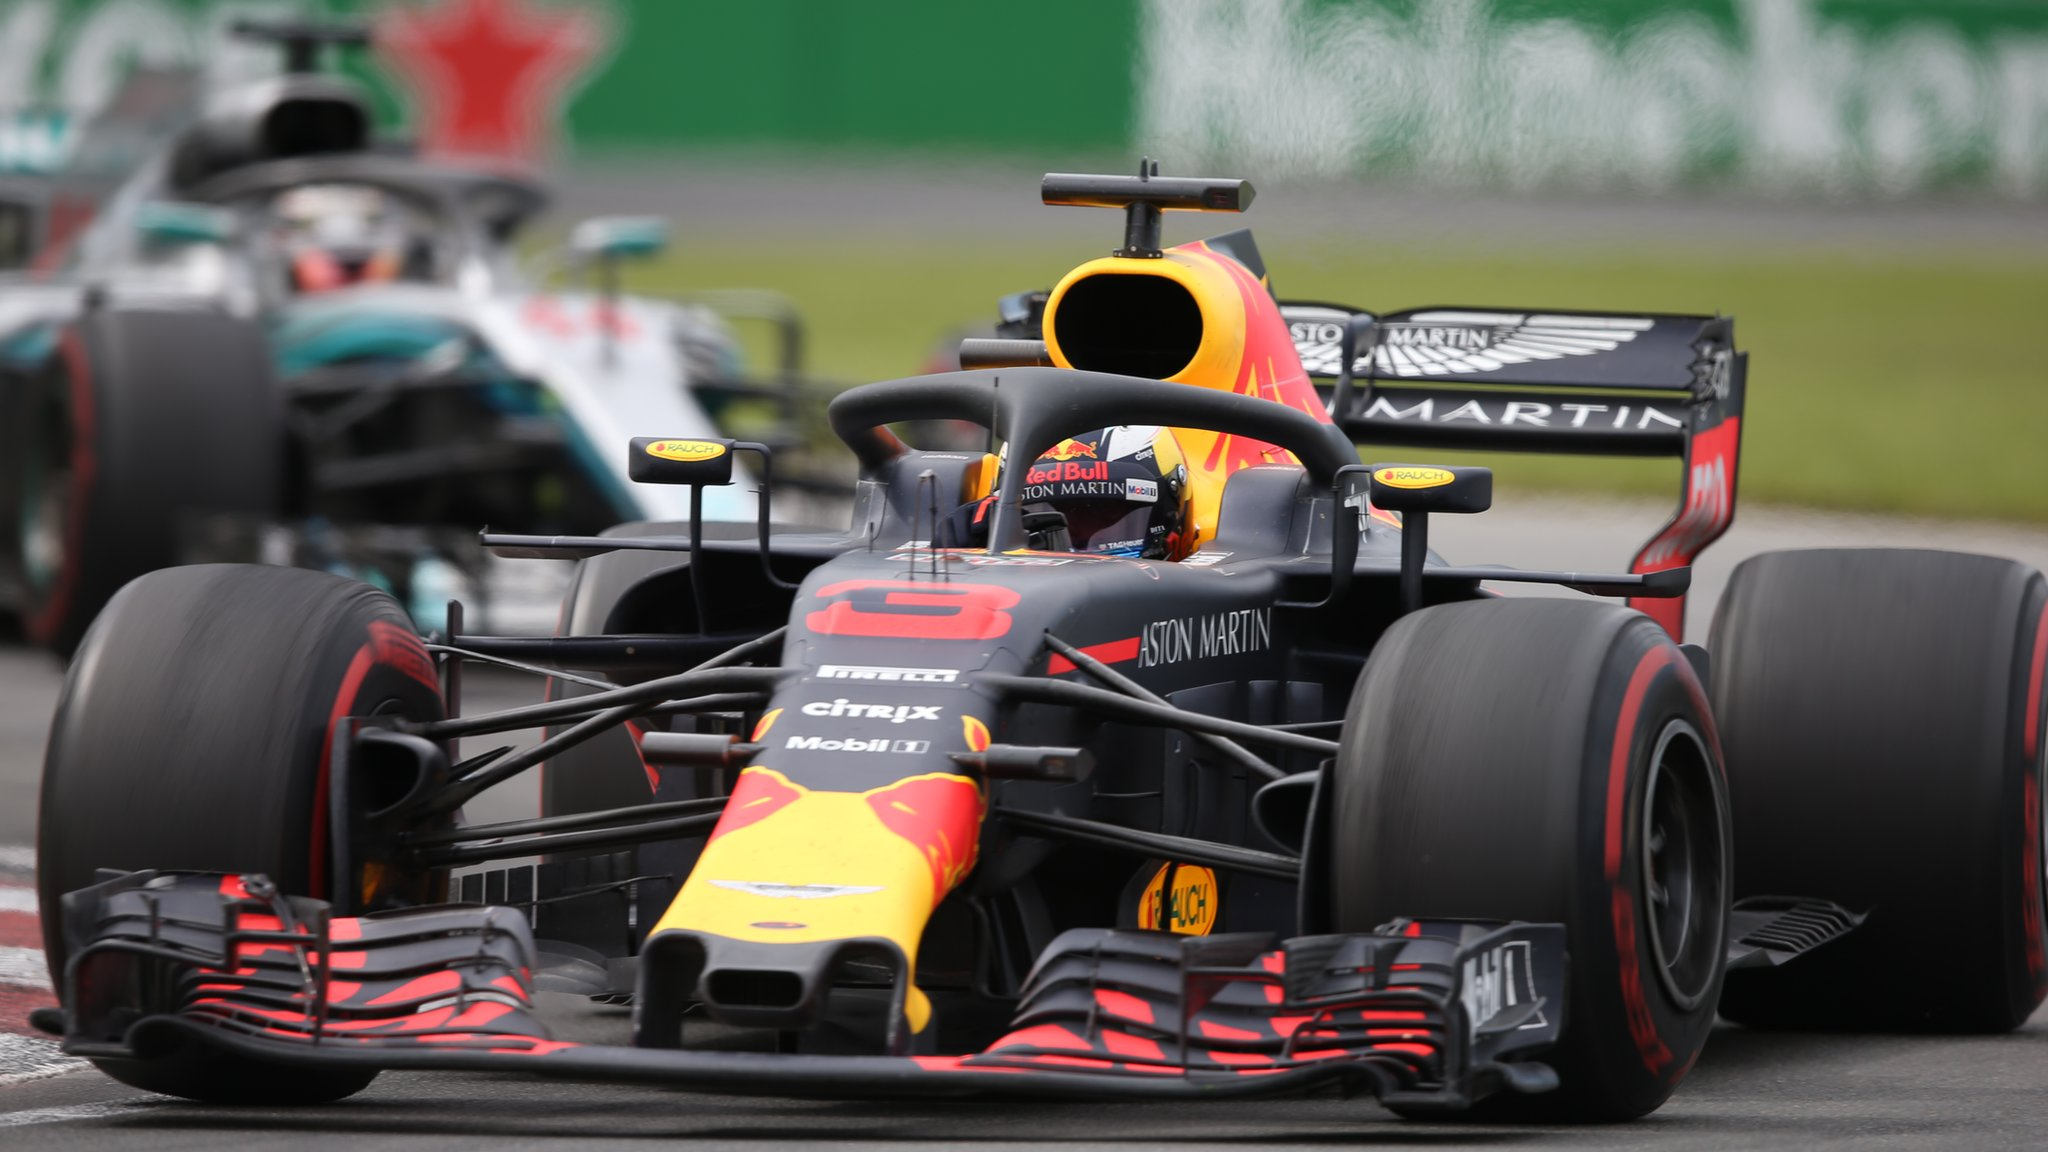 Red Bull to switch from Renault to Honda from 2019